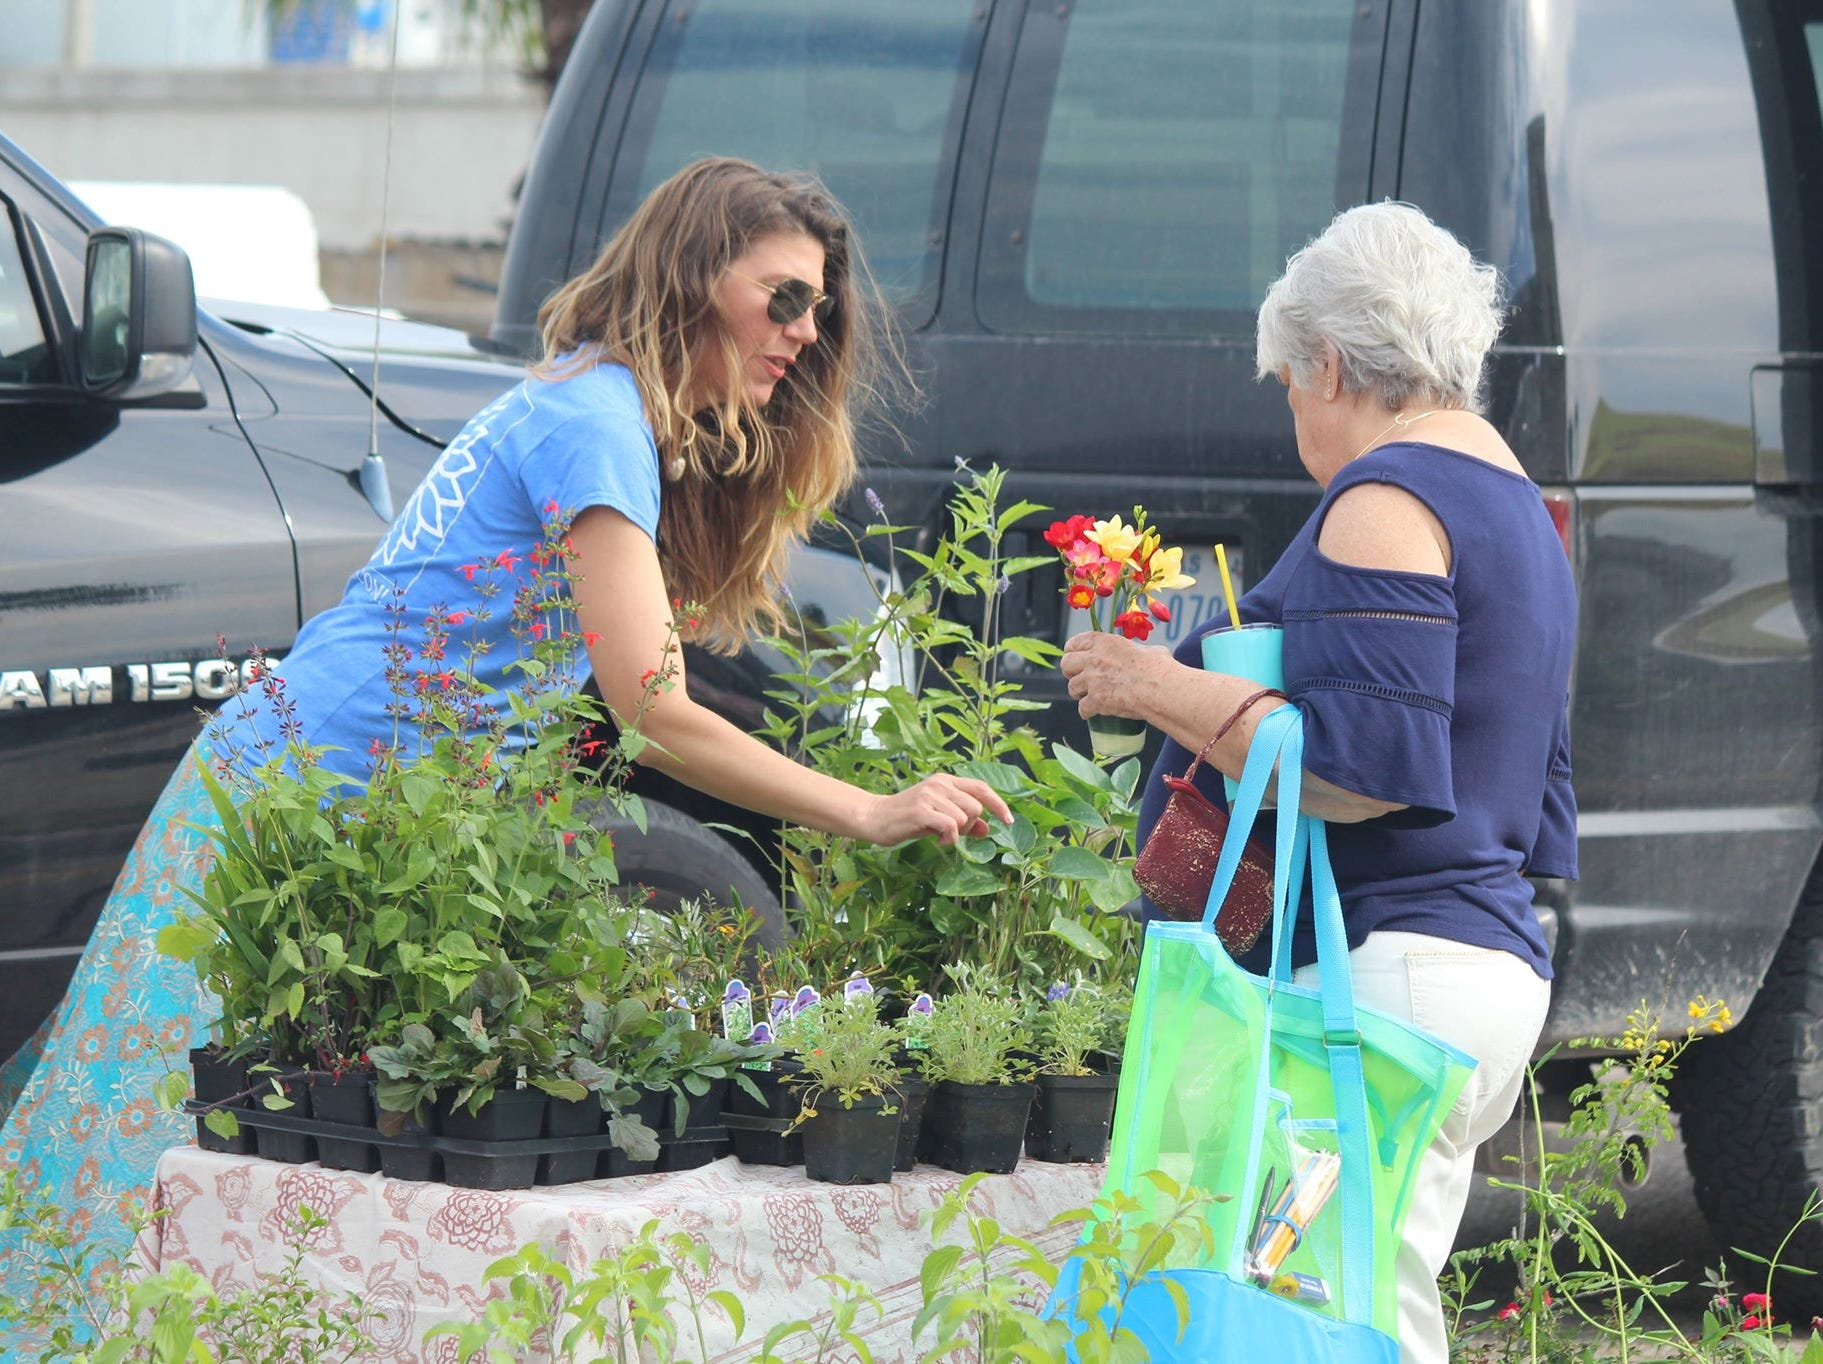 Shoppers can find a variety of seasonal produce at the Corpus Christi Downtown Farmers Market. It is open Wednesdays from 5 to 8 pm at 100 N. Shoreline Blvd.